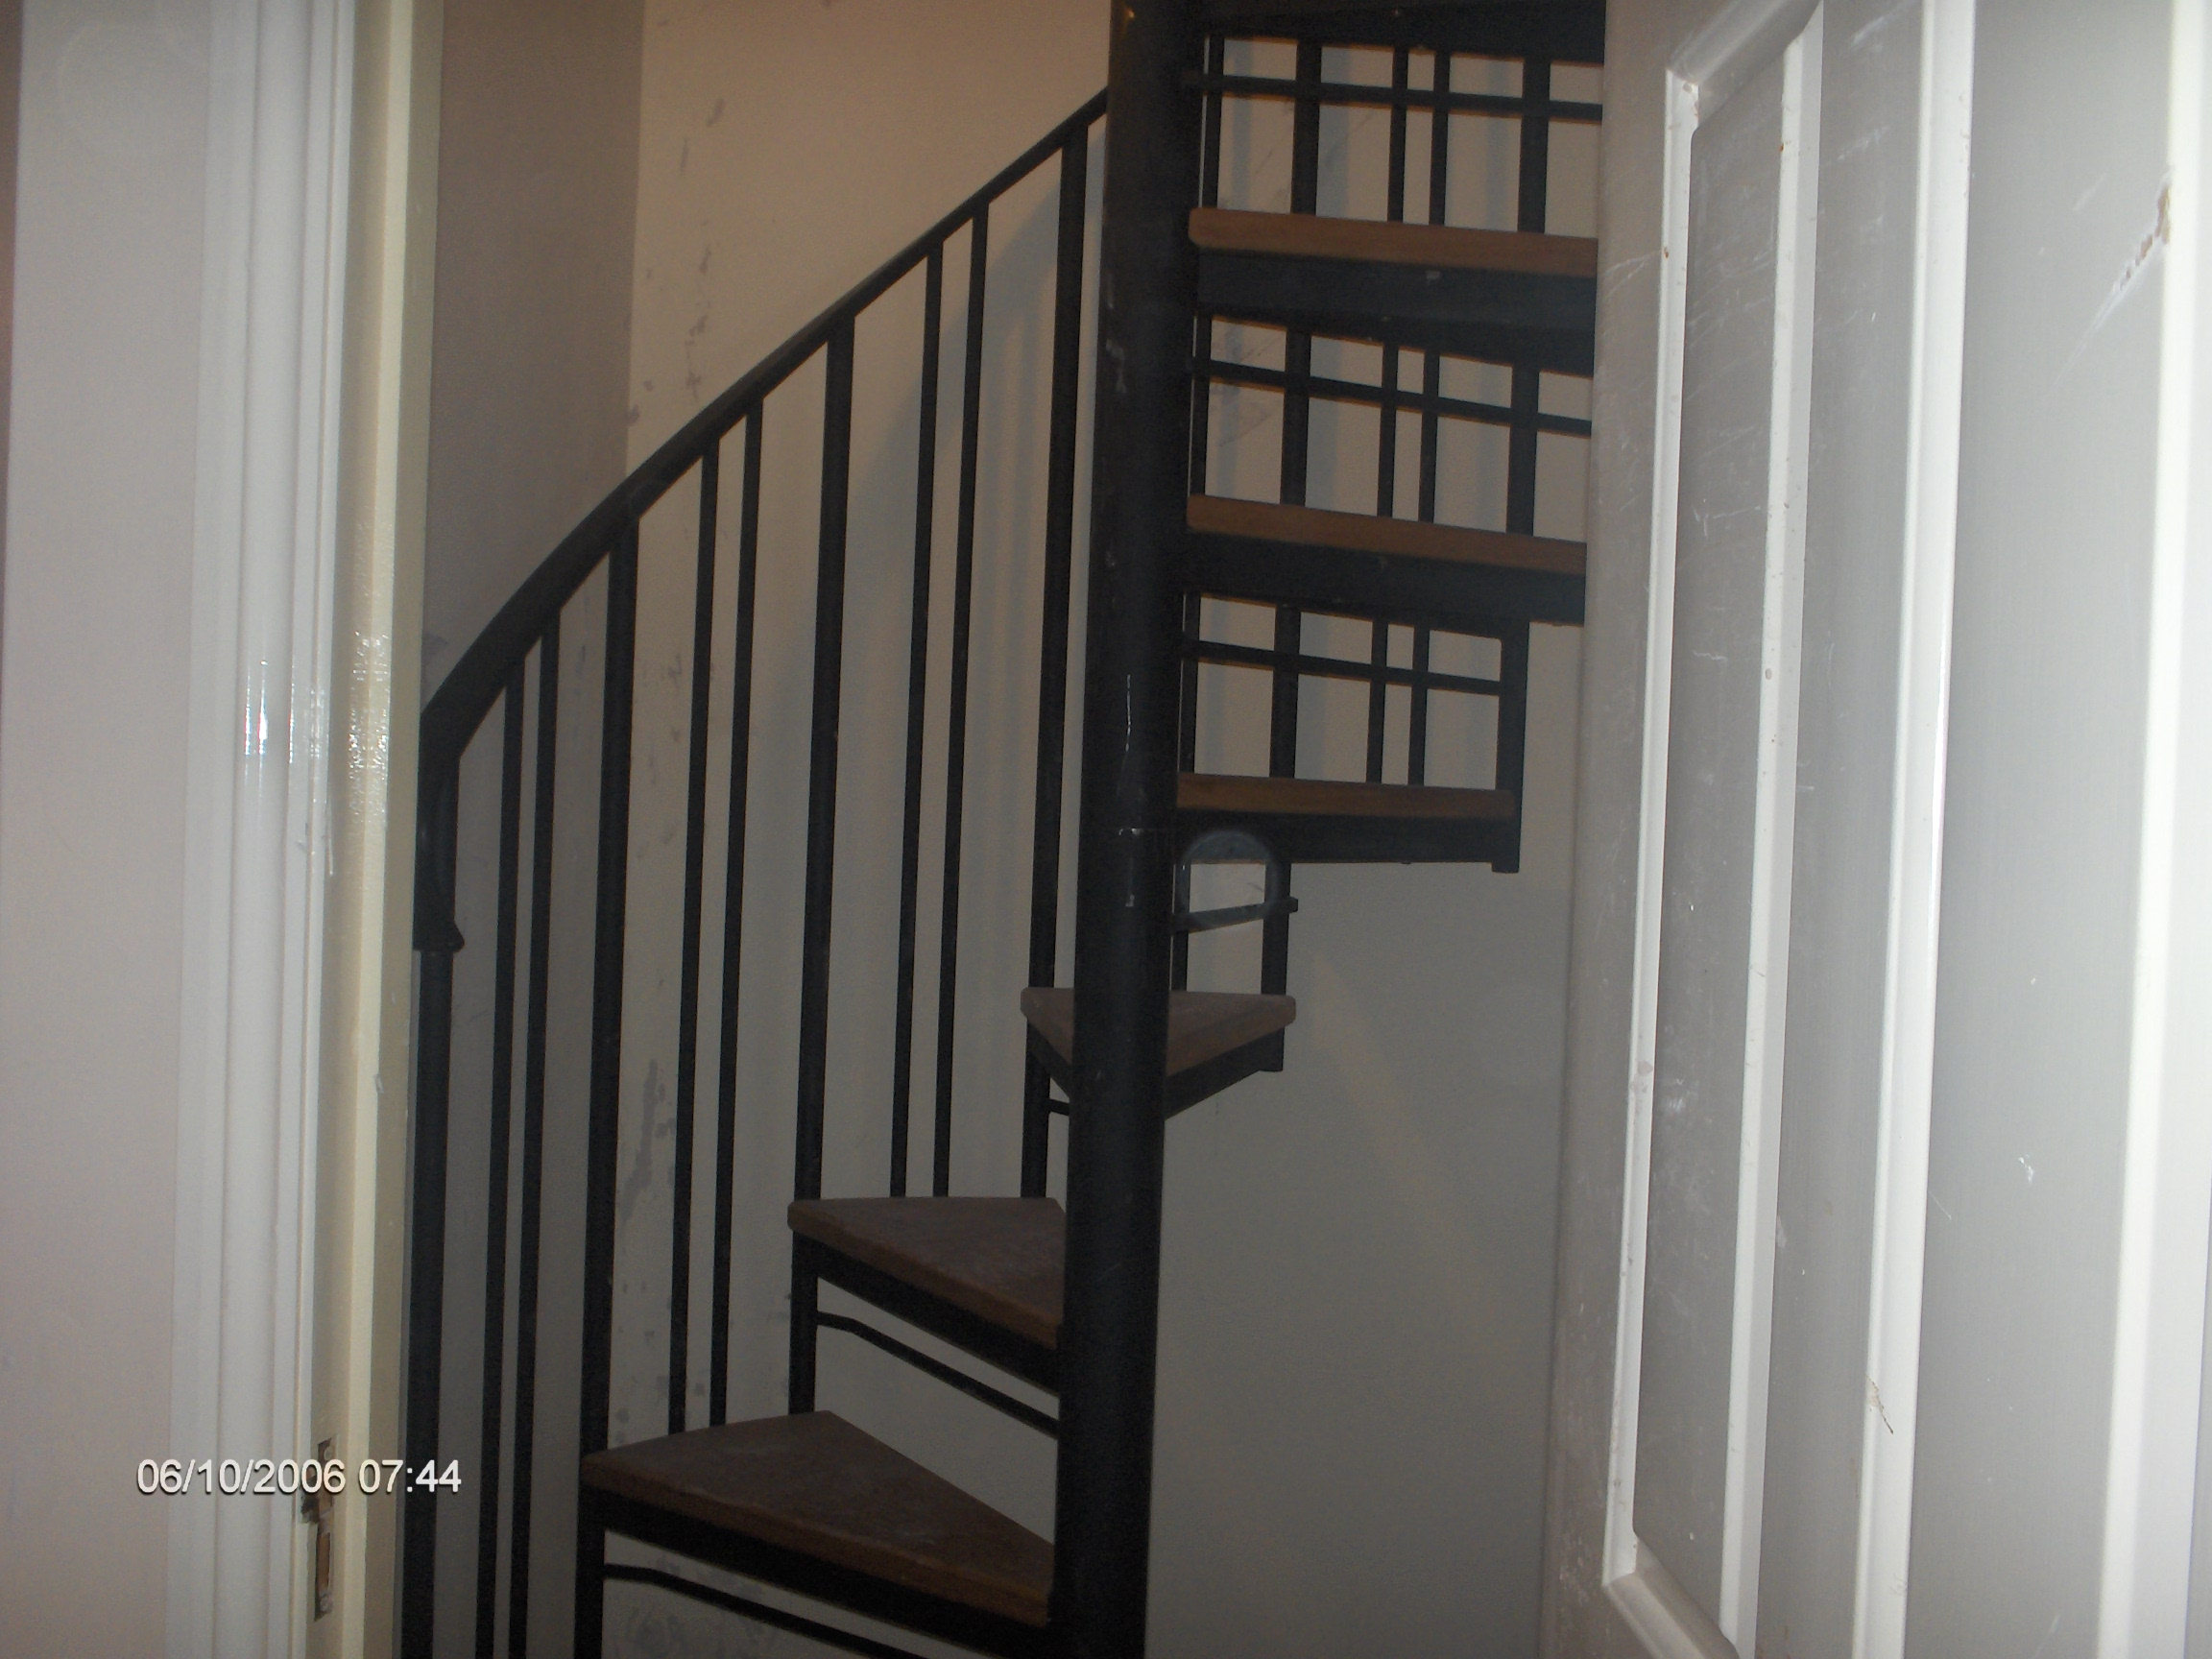 spiral stairs . steel structure and oak steps, made to measure.ideal for tight spaces. access to attic/loft